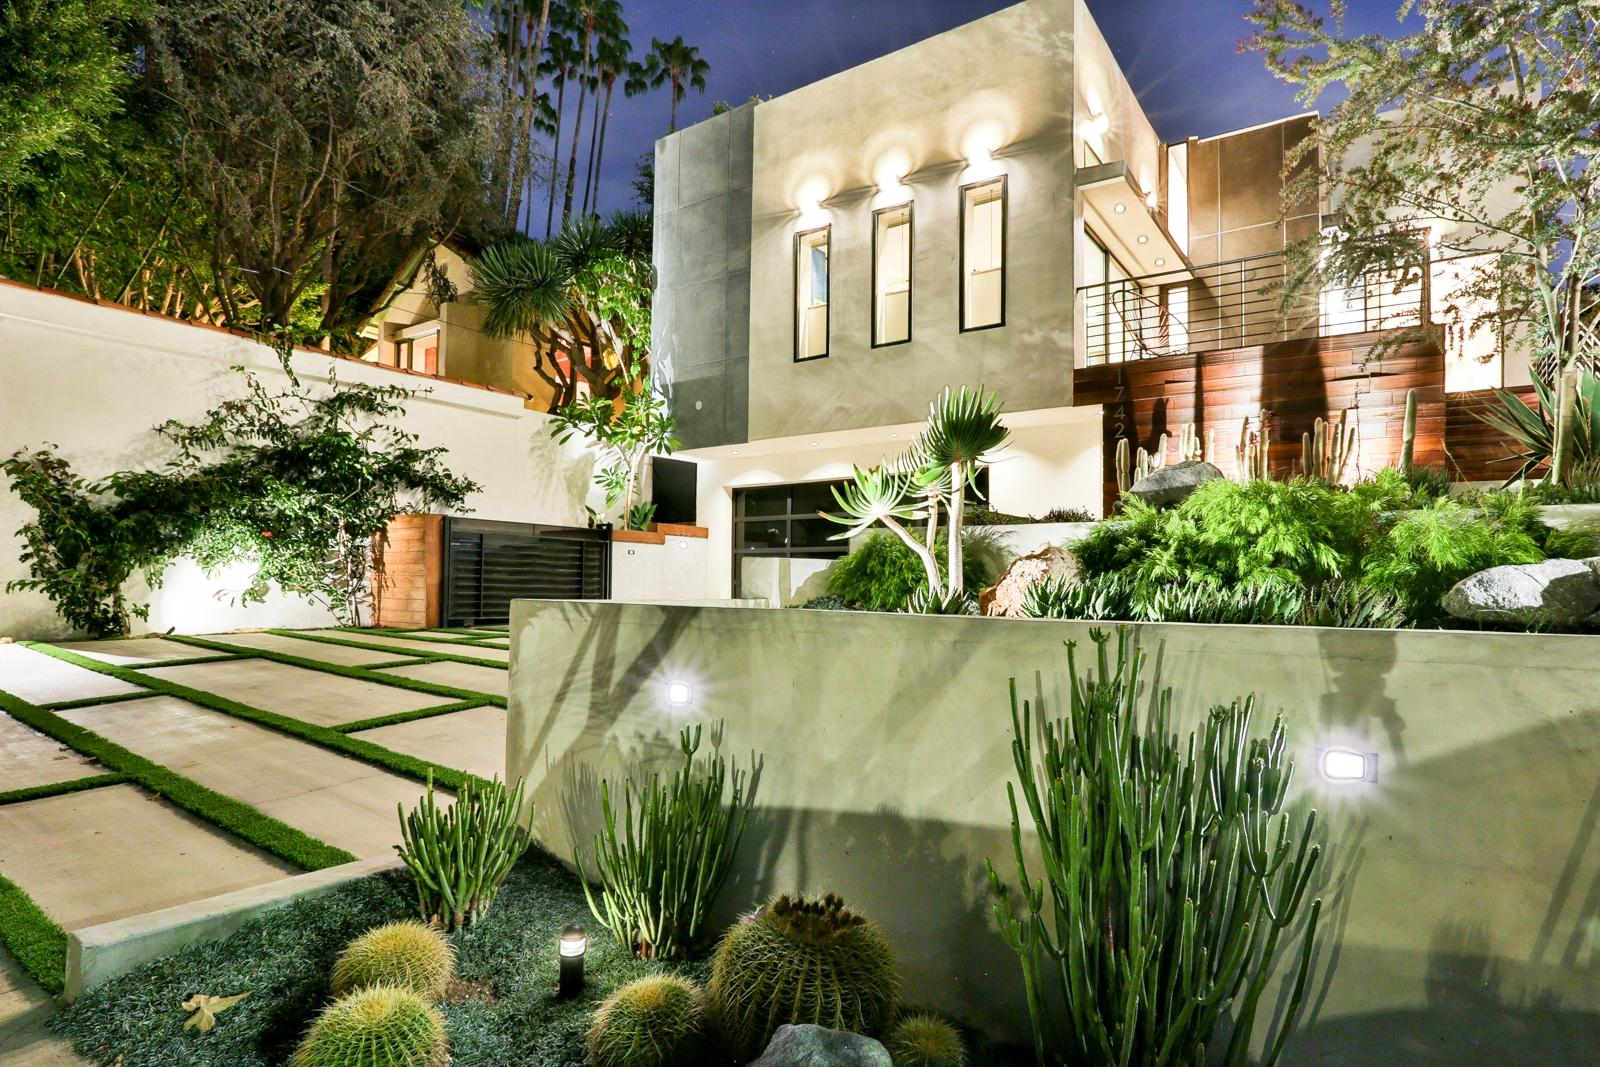 luxury vacation homes in Hollywood Hills CA